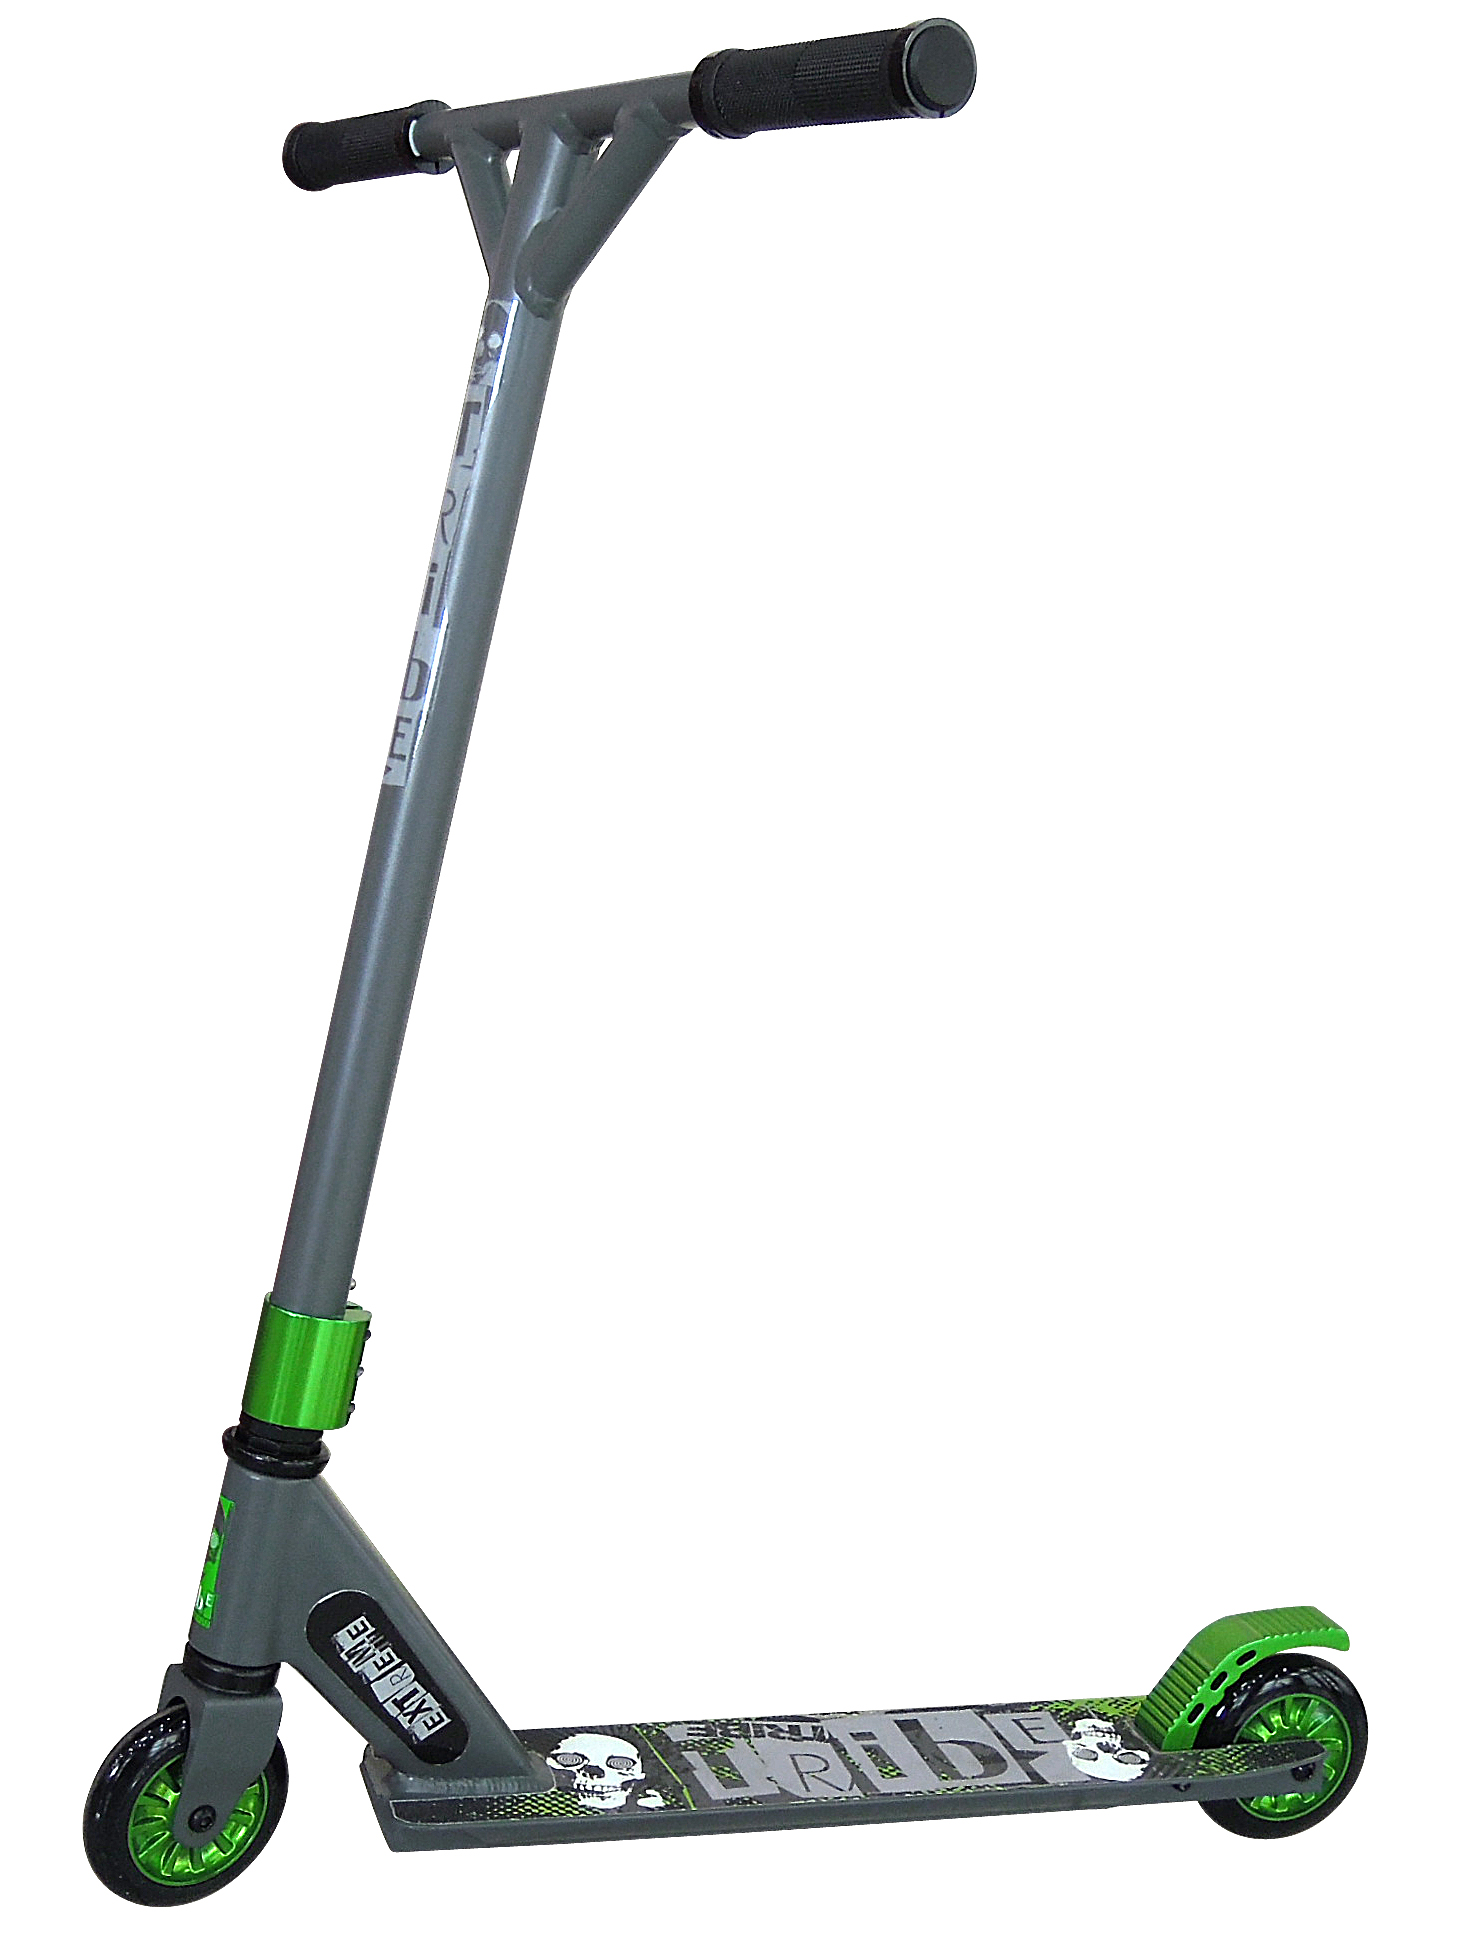 Hot sale stunt scooter for wholesale